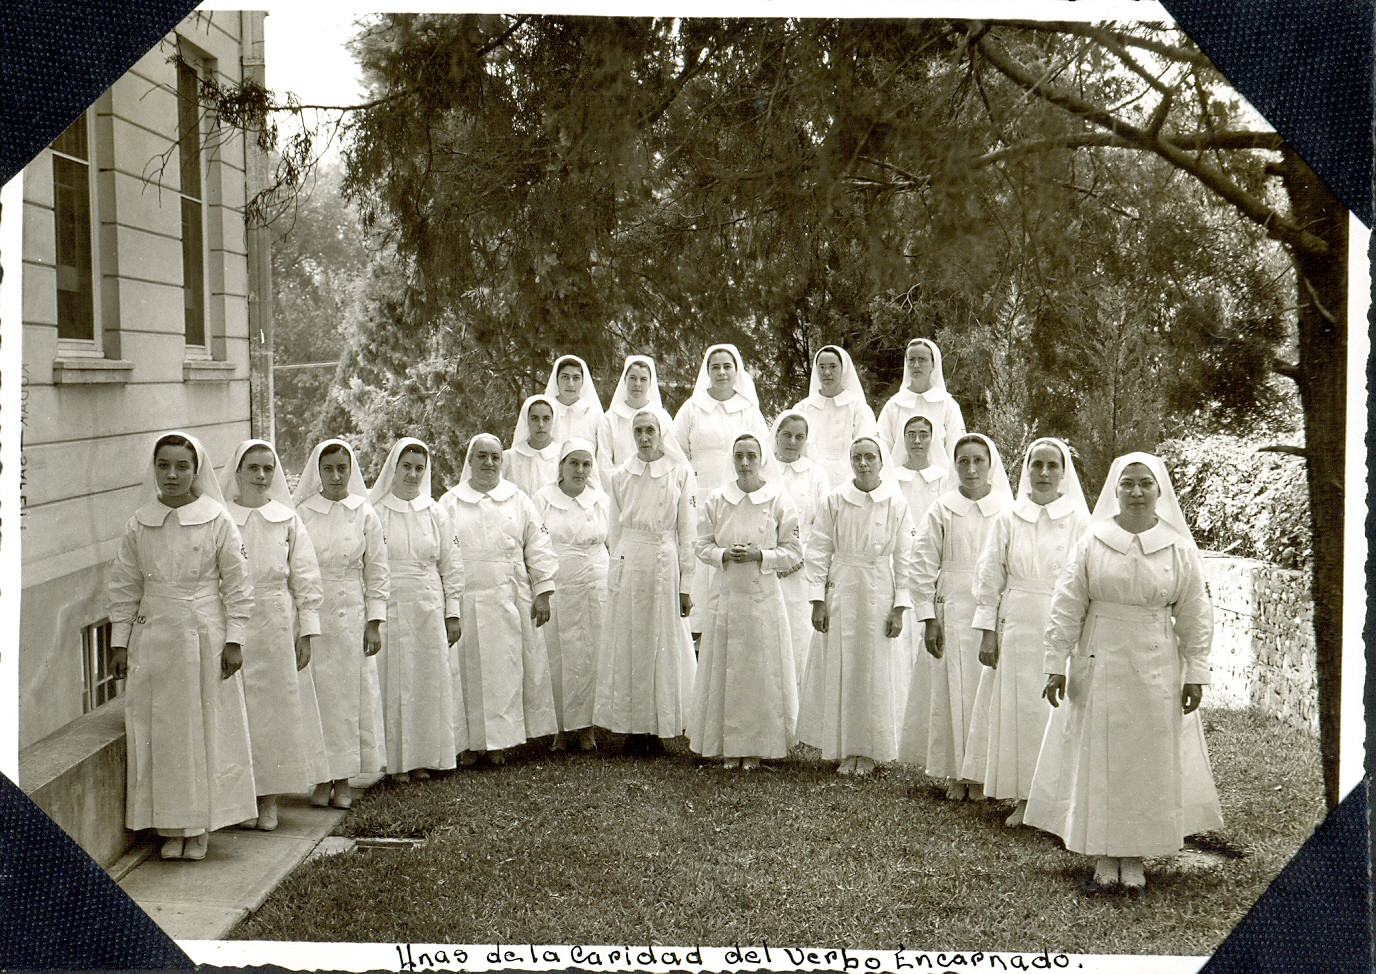 Sister nurses in Mexico were highly skilled and became renowned for their service to the people of Mexico.